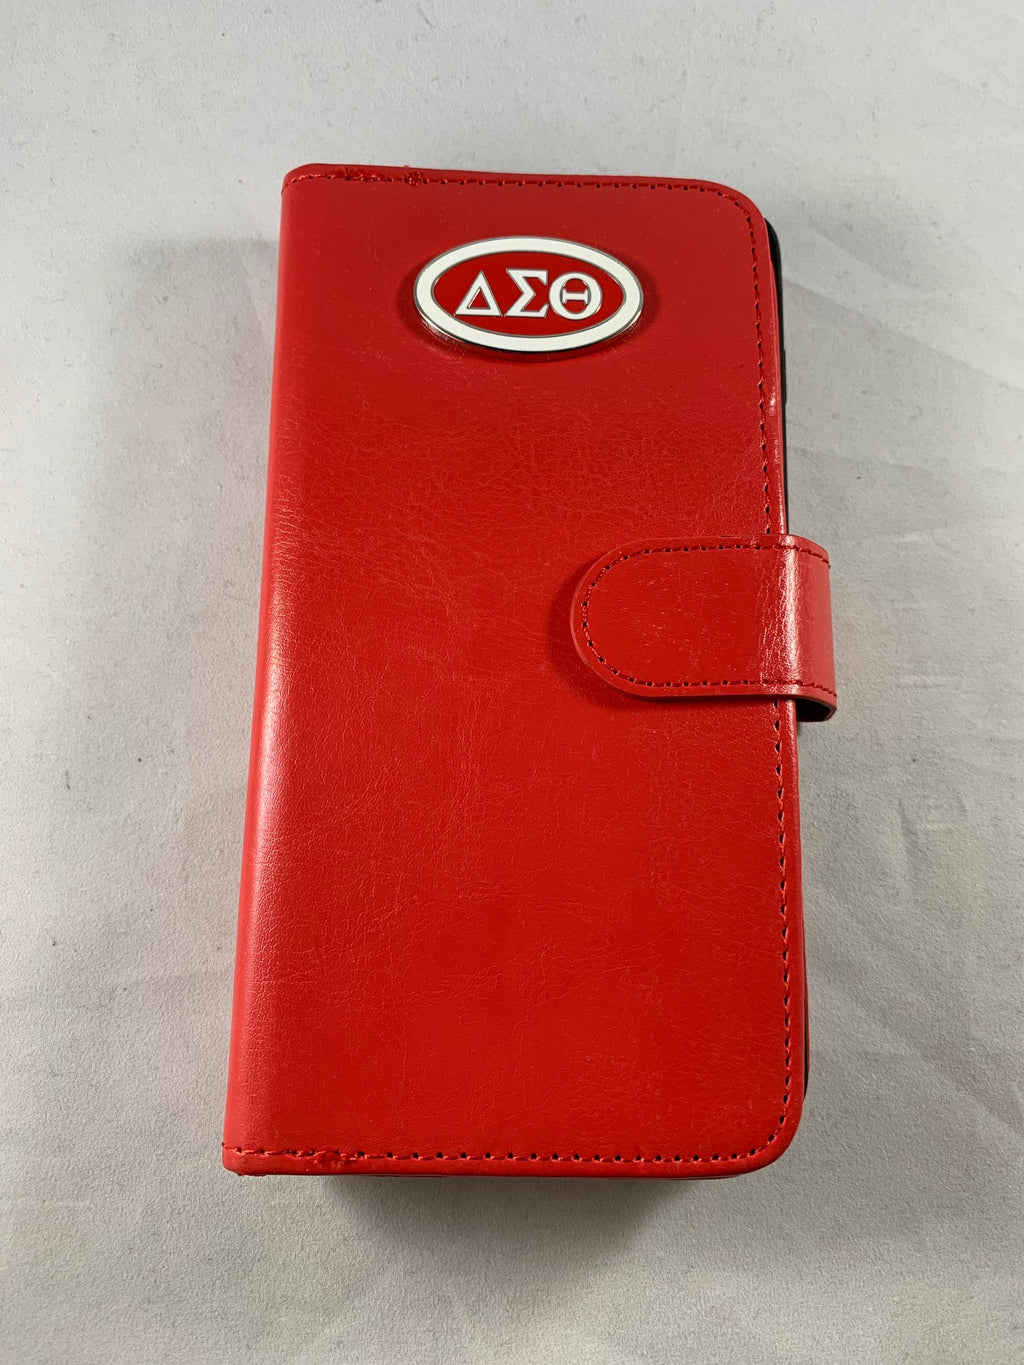 Delta S10 Plus Wallet Phone Cover